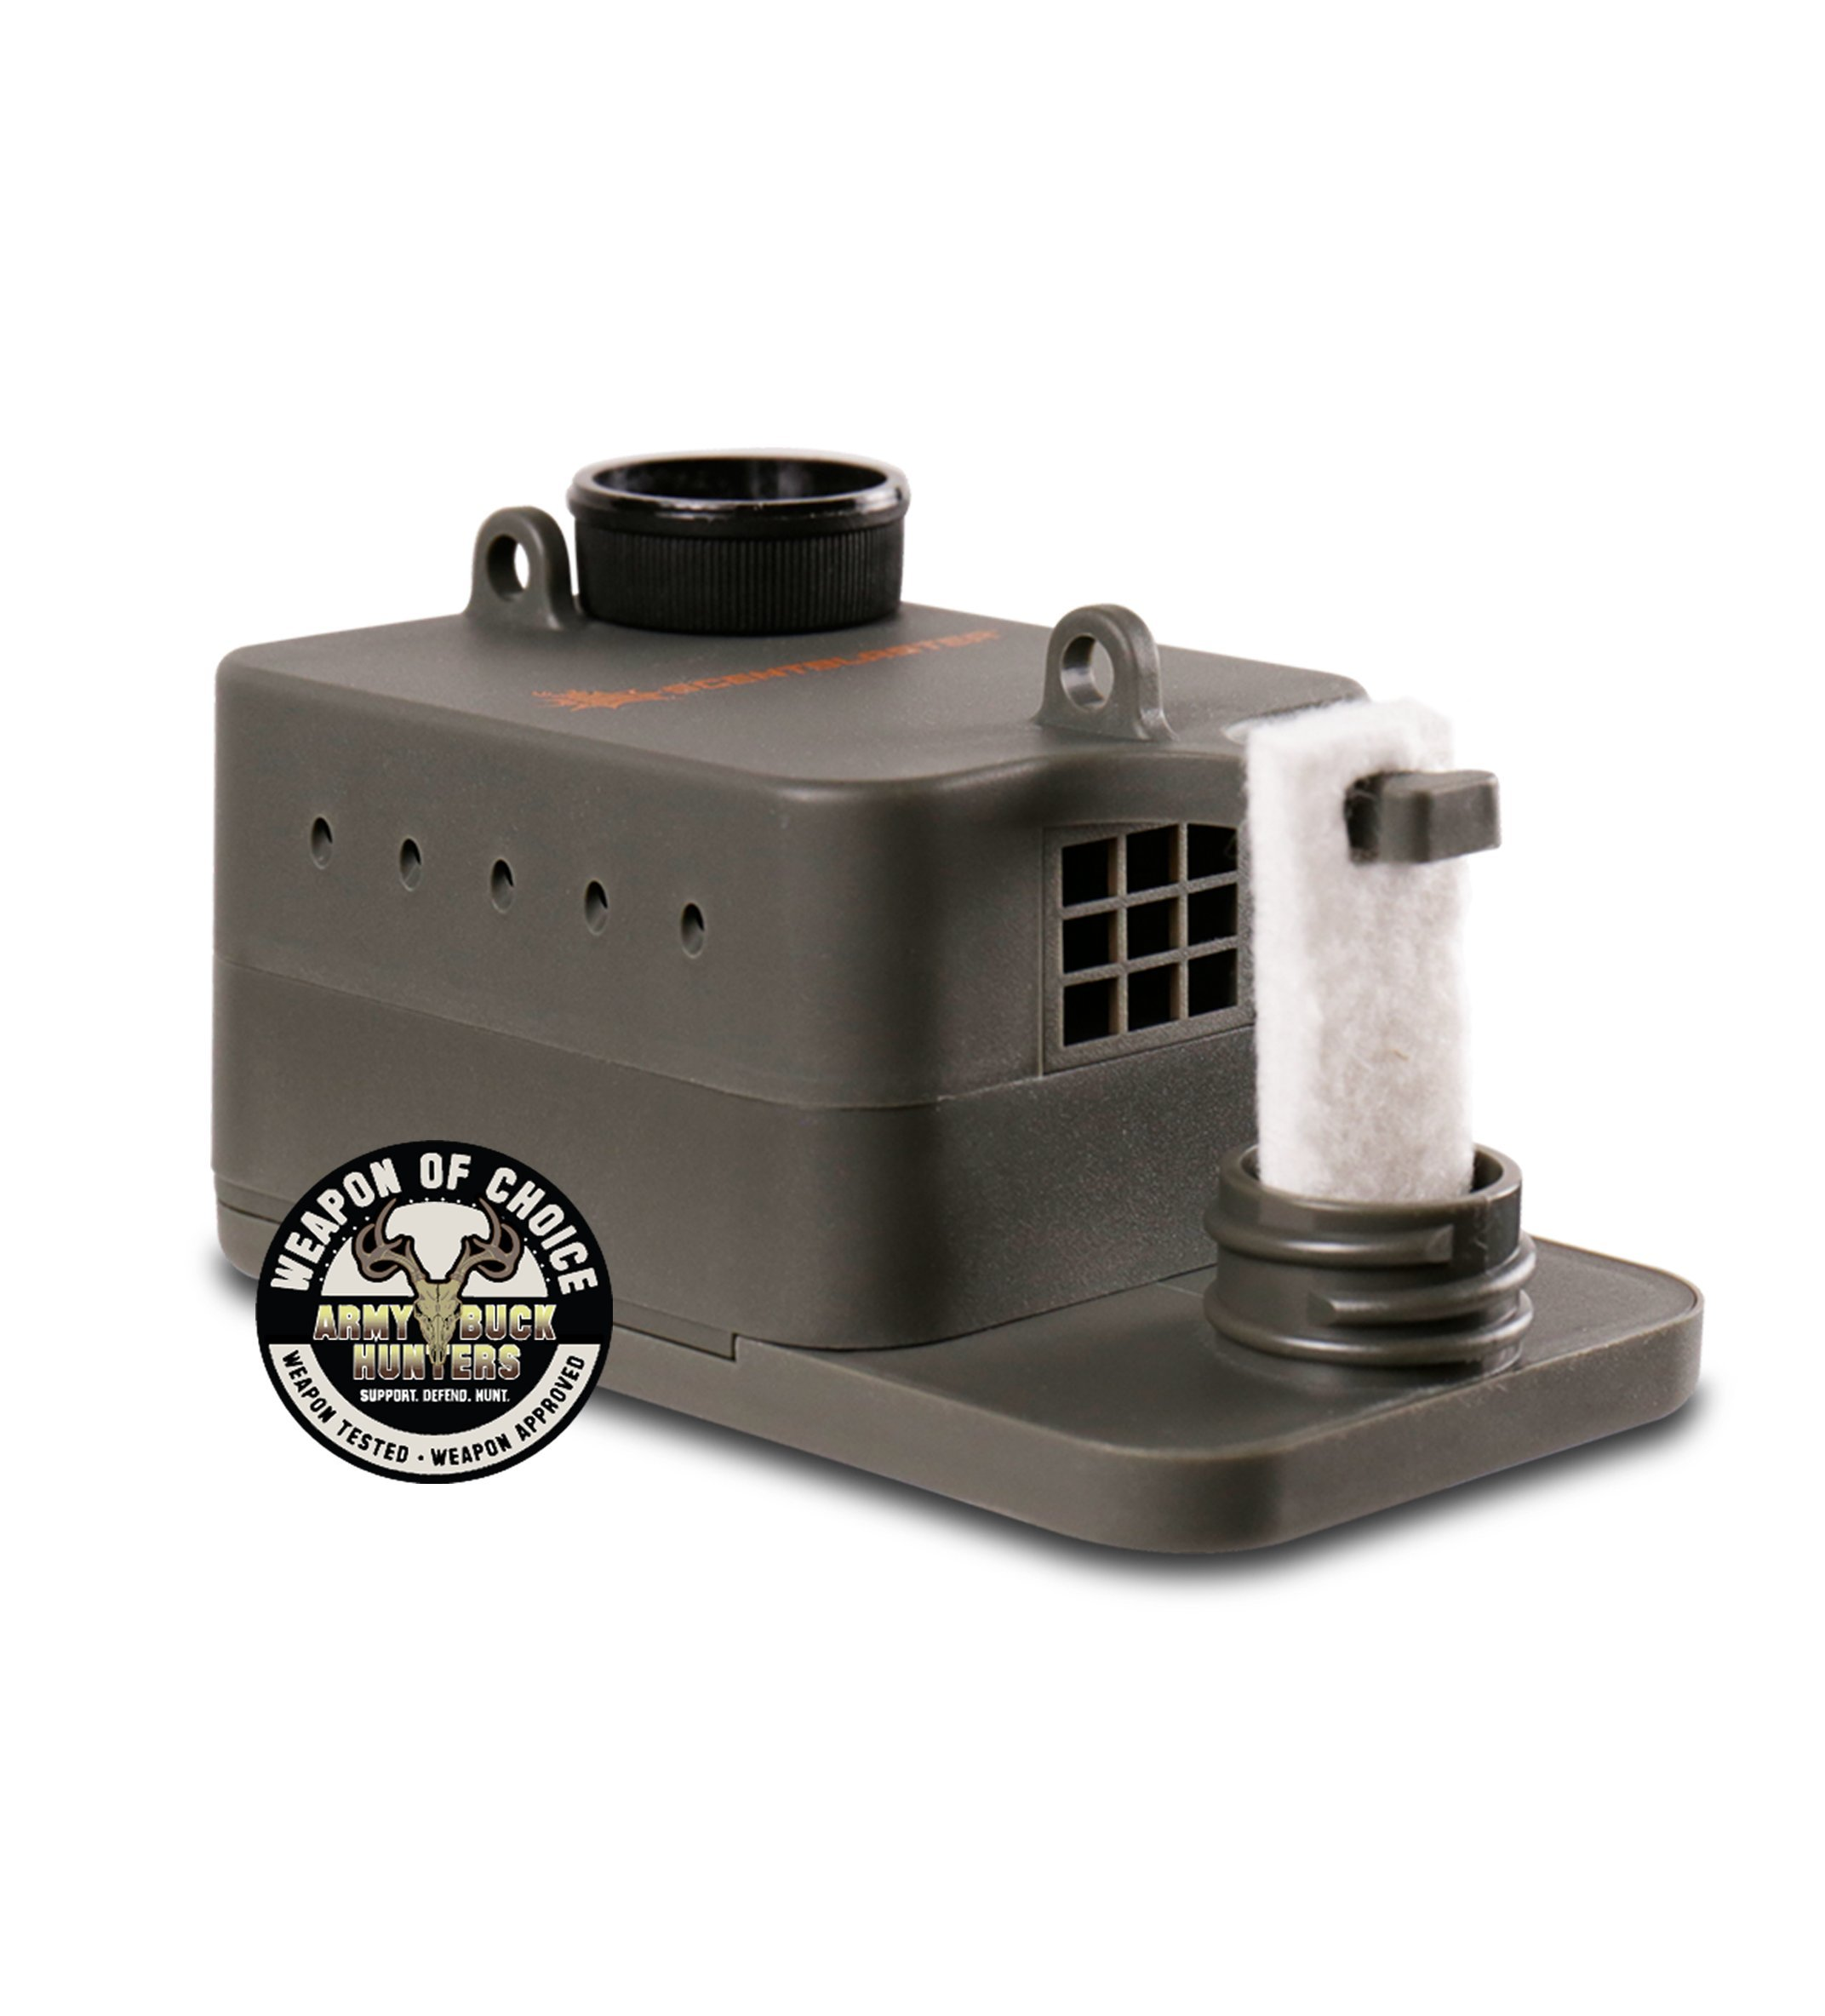 ScentBlaster Pro Kit, ScentBlasterWick 6-Pack & Extra ScentContainer. The World's best wicking system, works with any hunting scent, attracts more game to the kill zone! by ScentBlaster (Image #3)